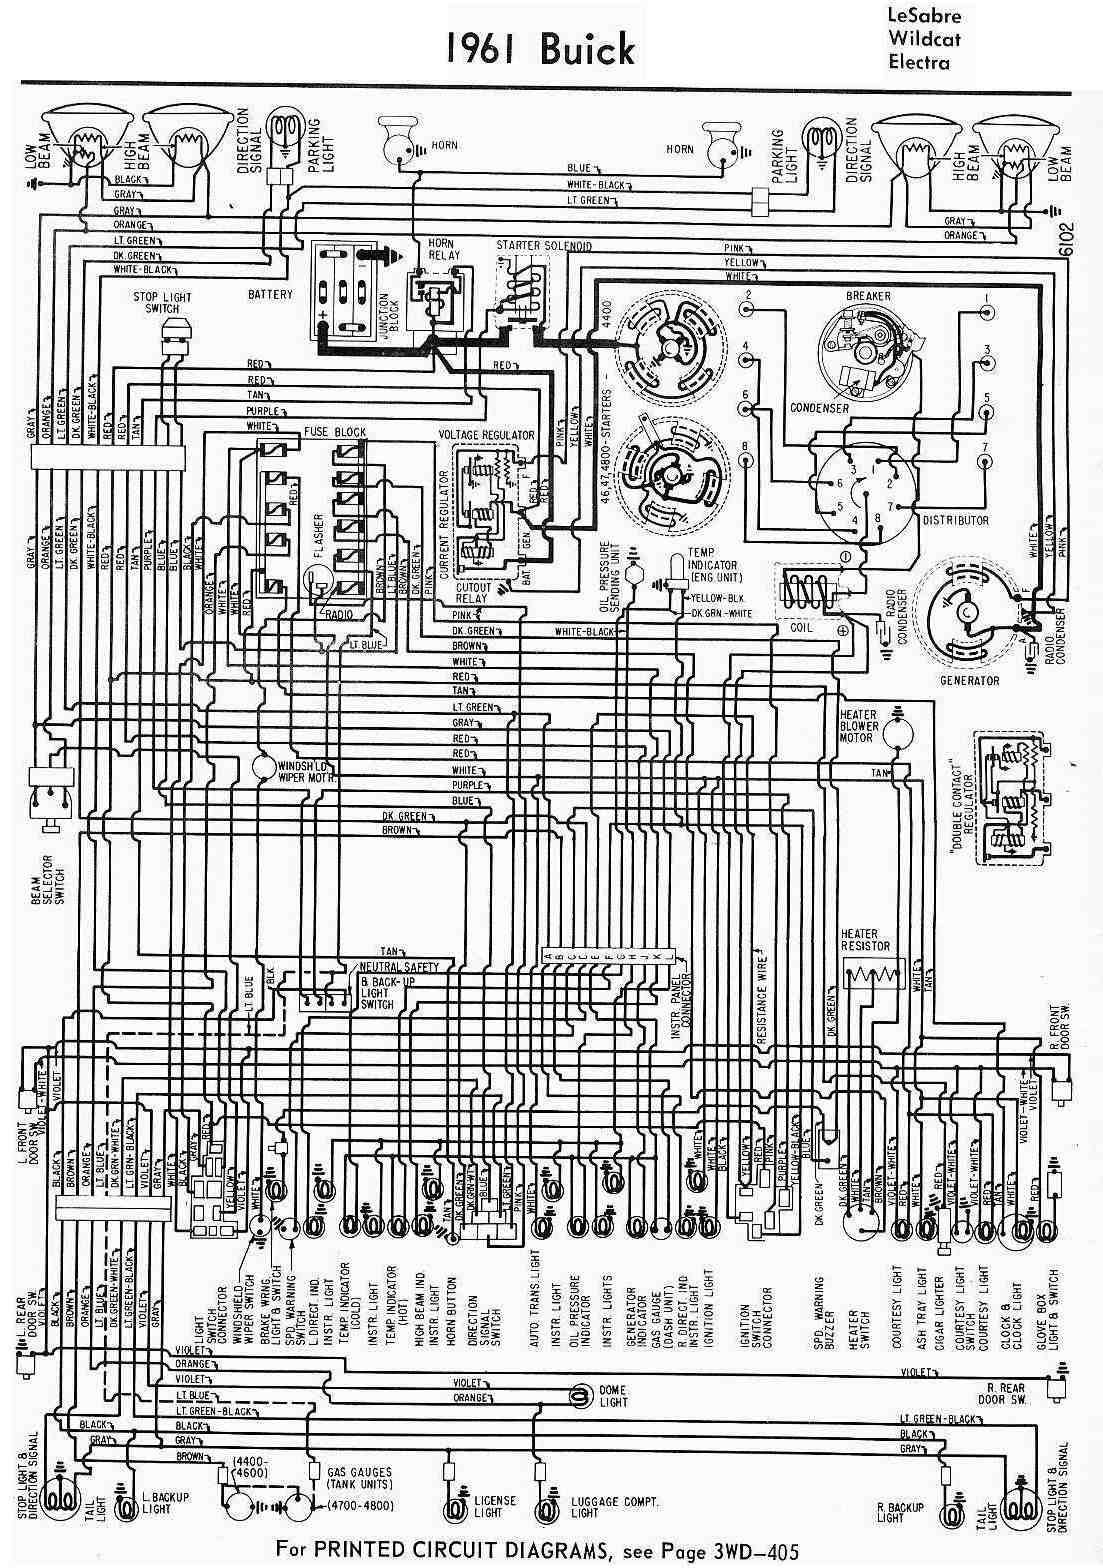 1948 Studebaker Wiring Diagram Opinions About 1950 Dodge Truck Manual Repair With Engine Rh Pinterest Com 1928 1959 Pickup Diagrams